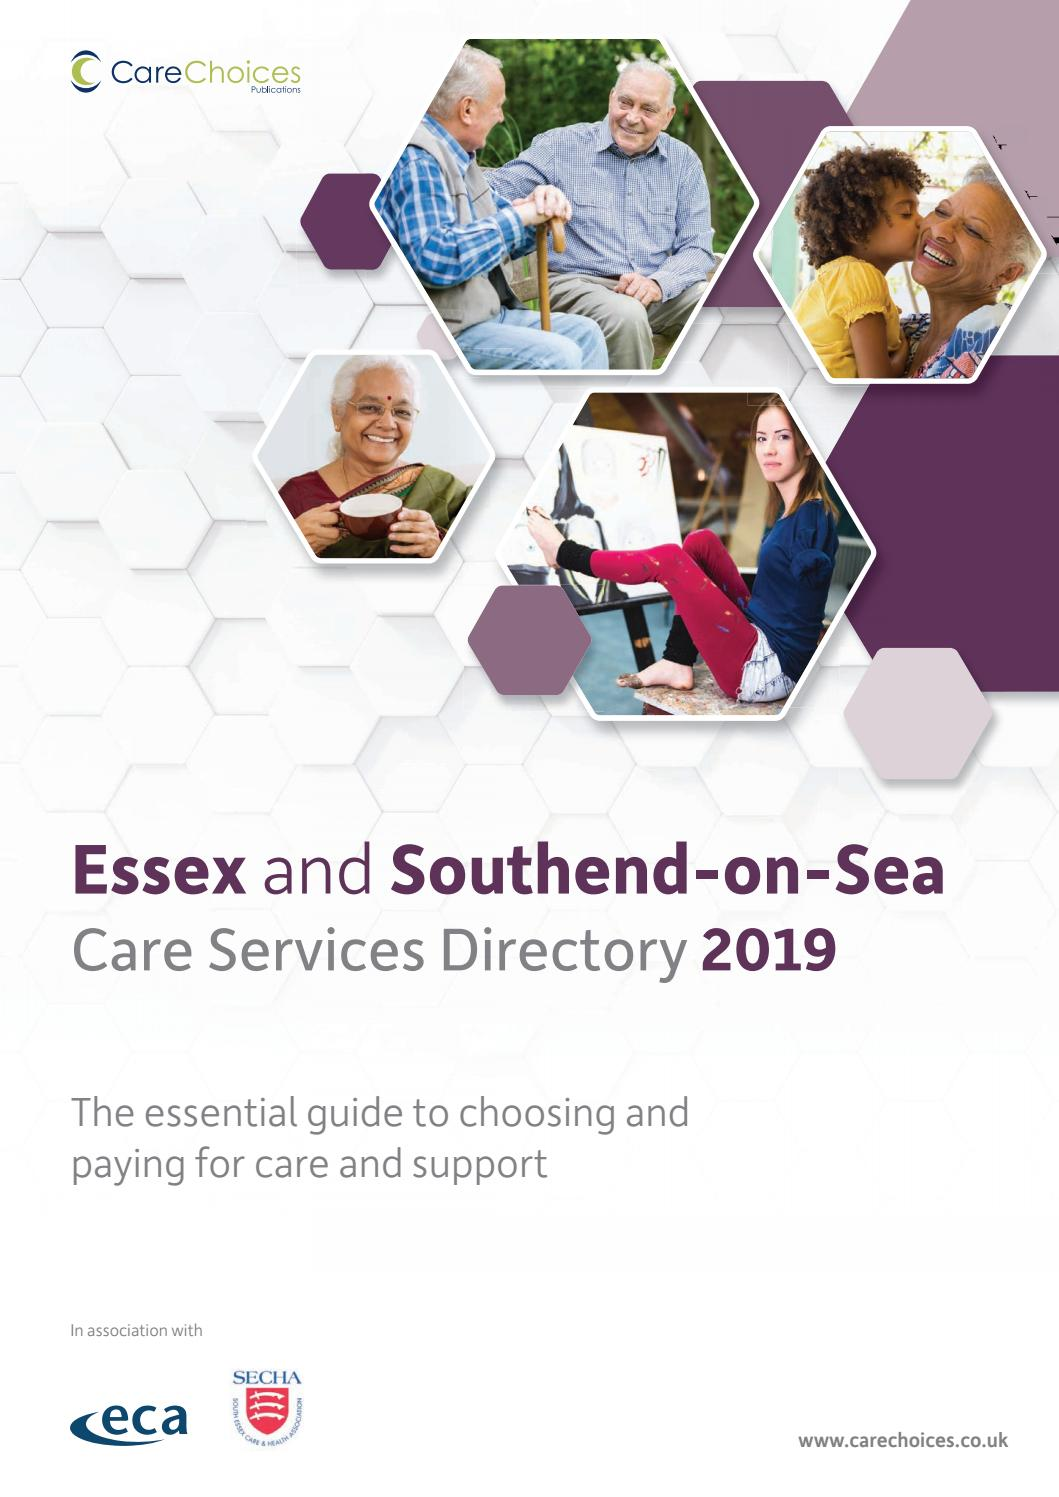 Essex and Southend-on-Sea Care Service Directory 2019 by